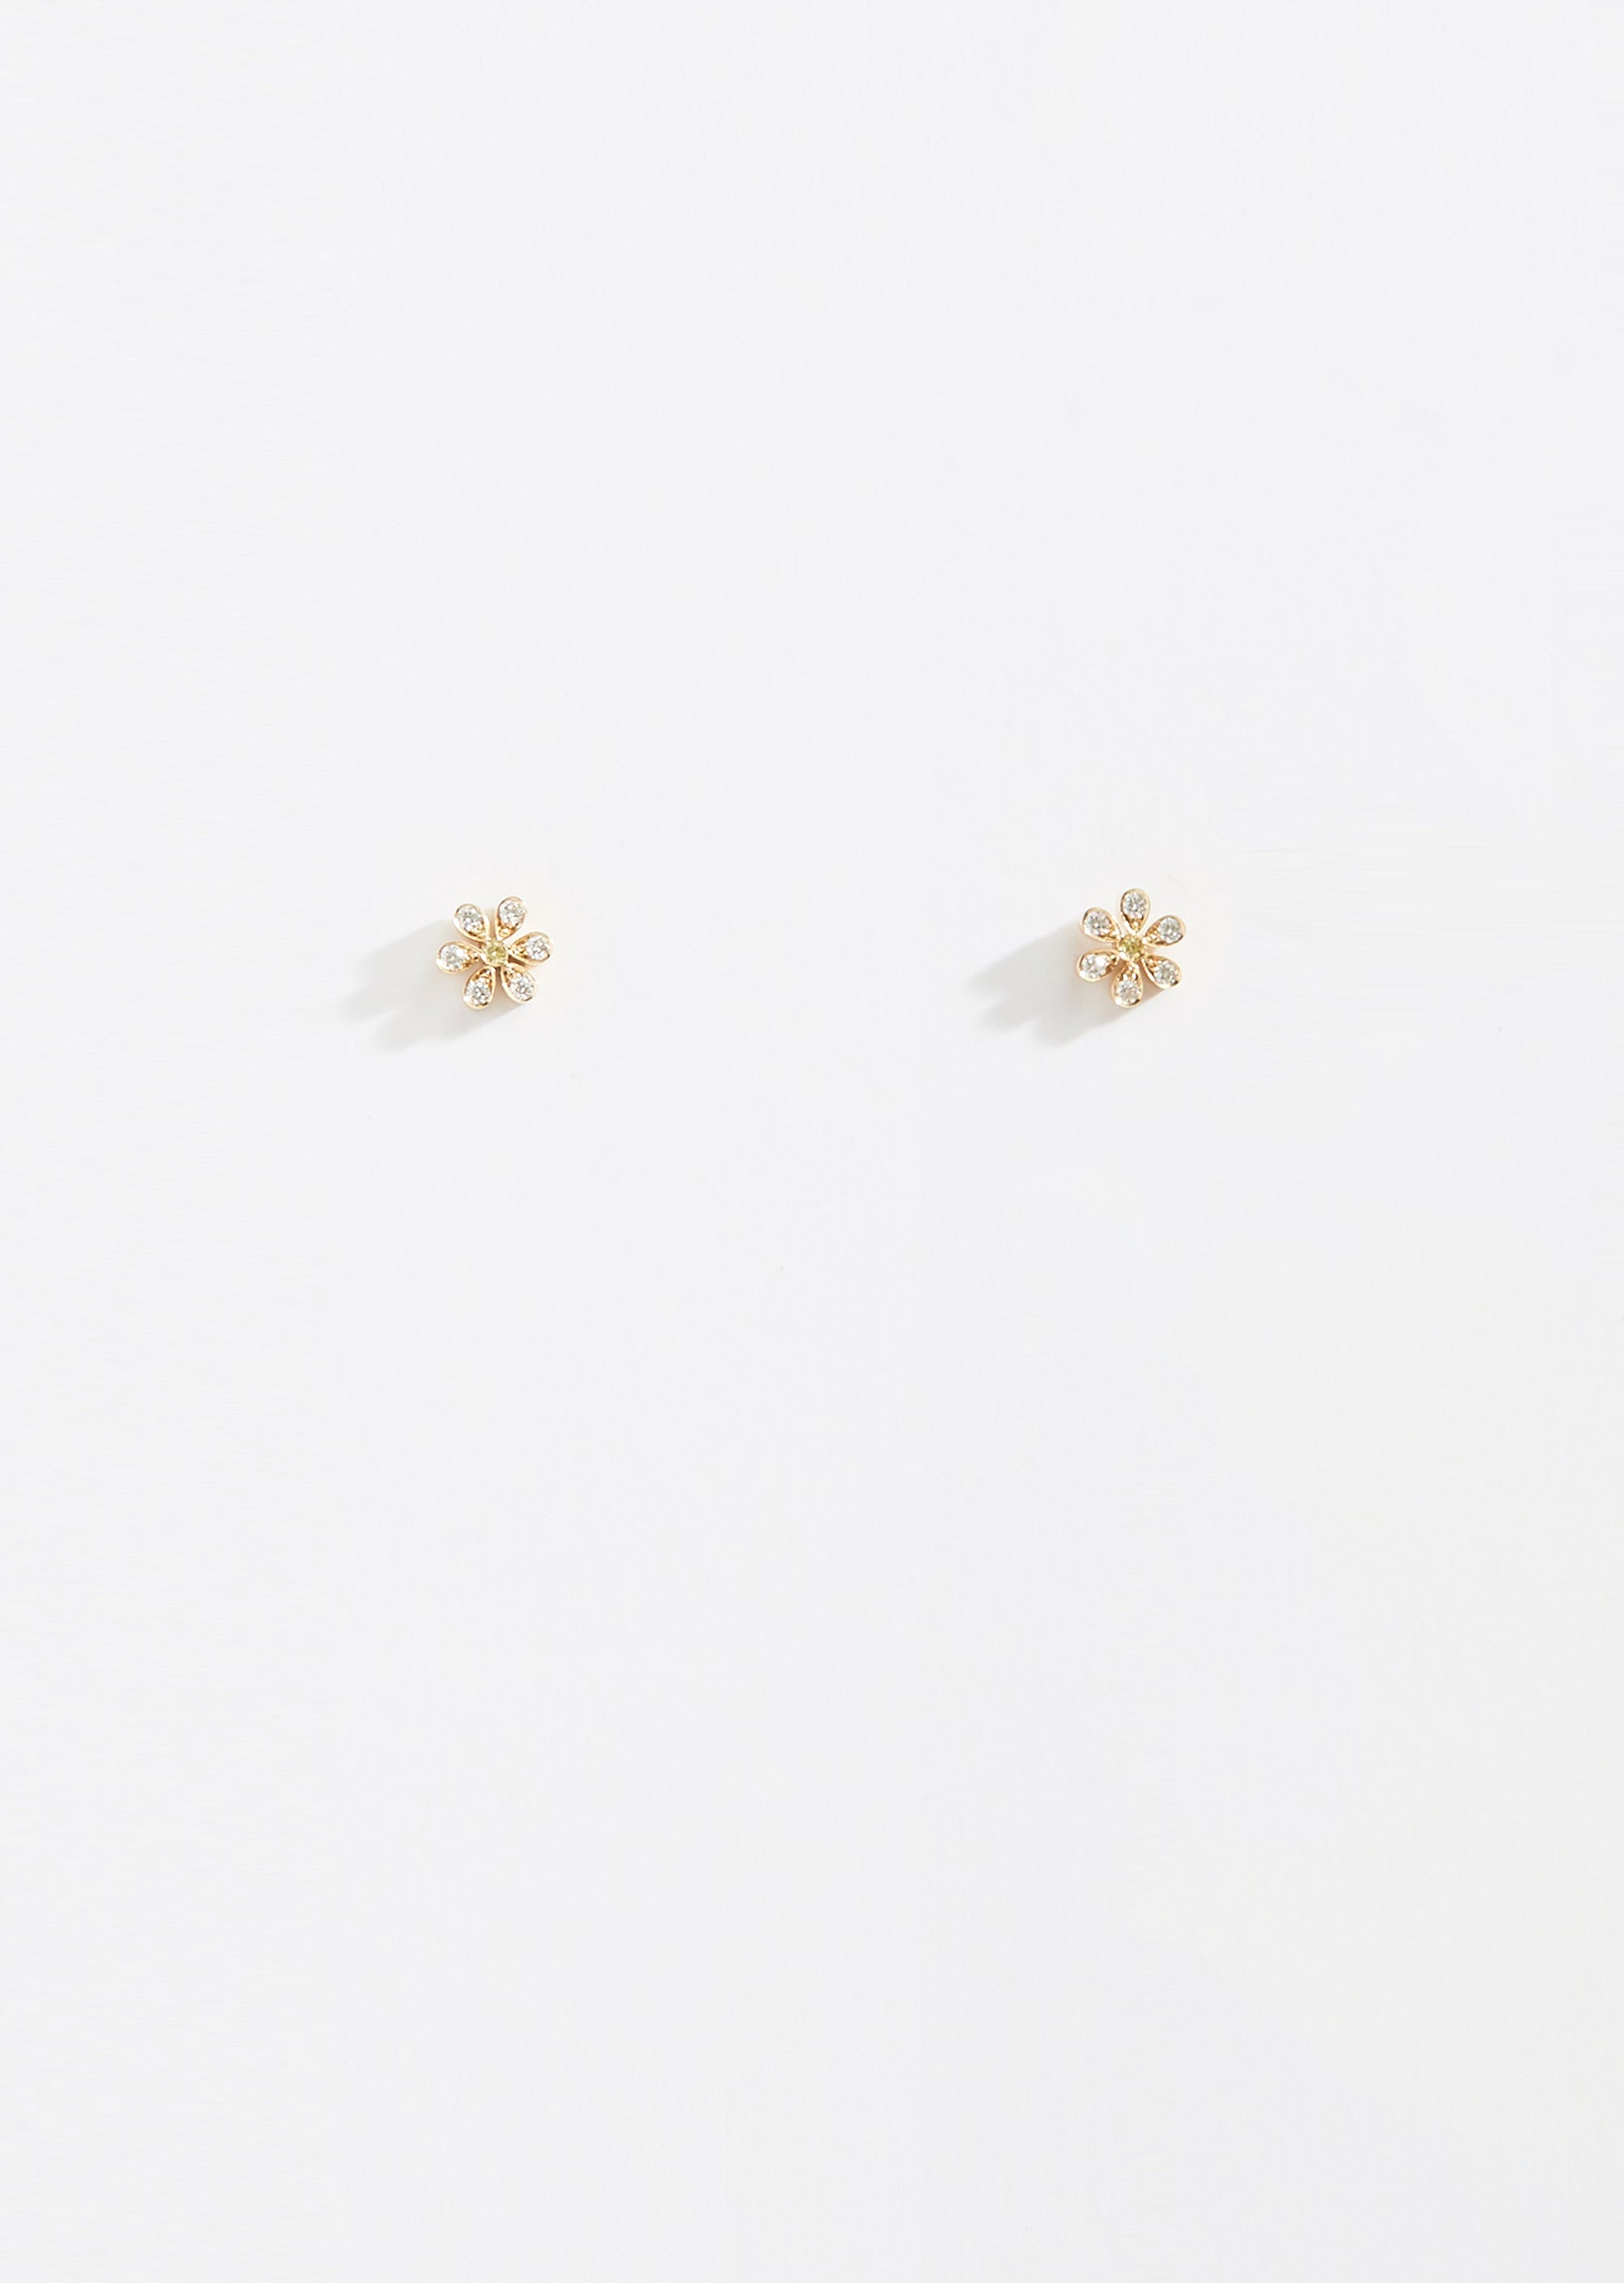 2cbb7a3492ab5 Marguerite Earring Studs - One Size / 18k yellow gold, 0,26 ct, TW.VVS  diamond